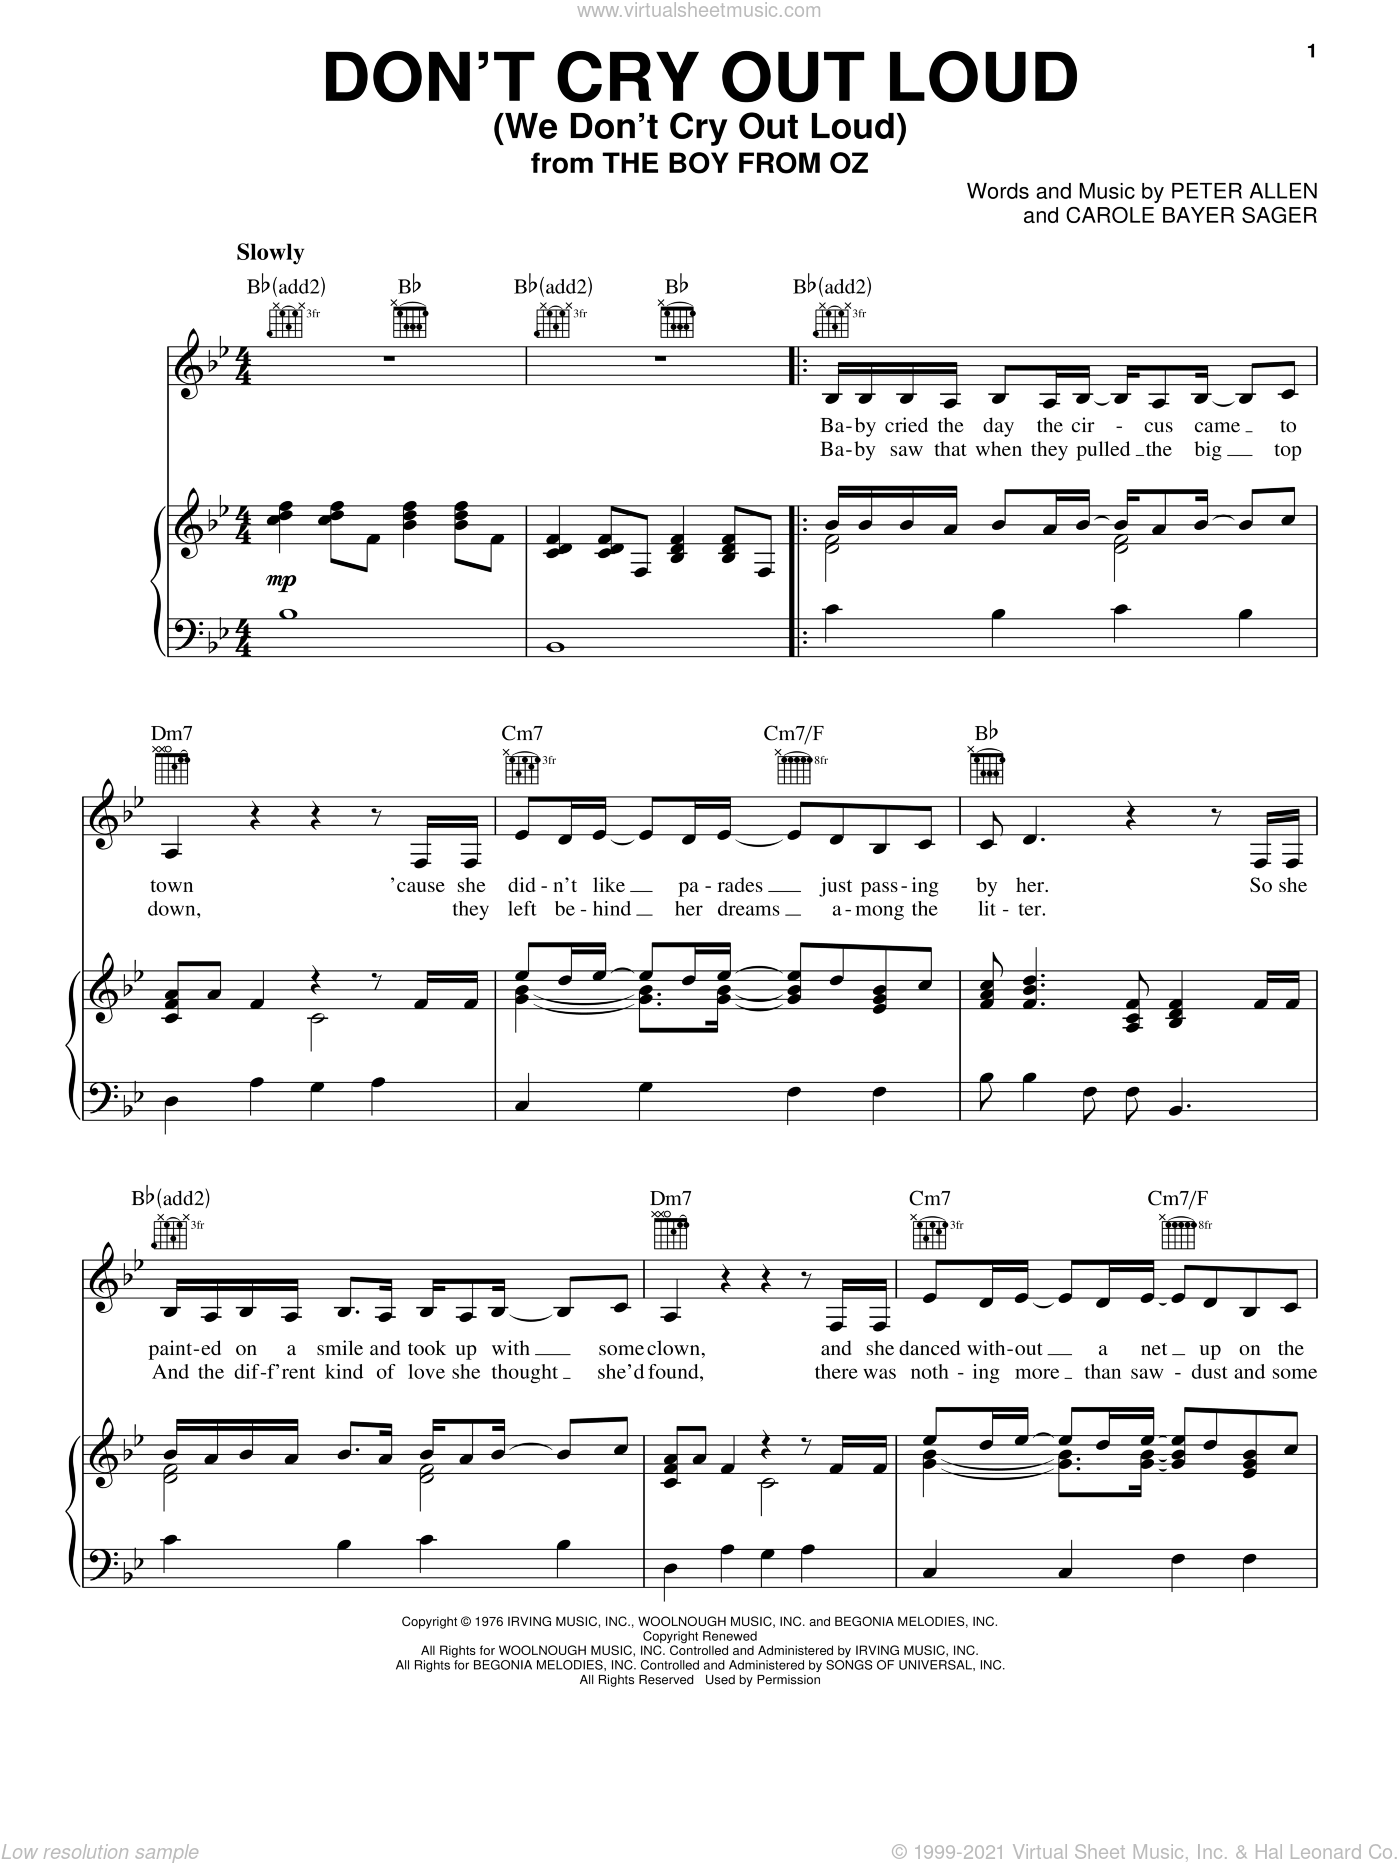 Don't Cry Out Loud (We Don't Cry Out Loud) sheet music for voice, piano or guitar by Carole Bayer Sager